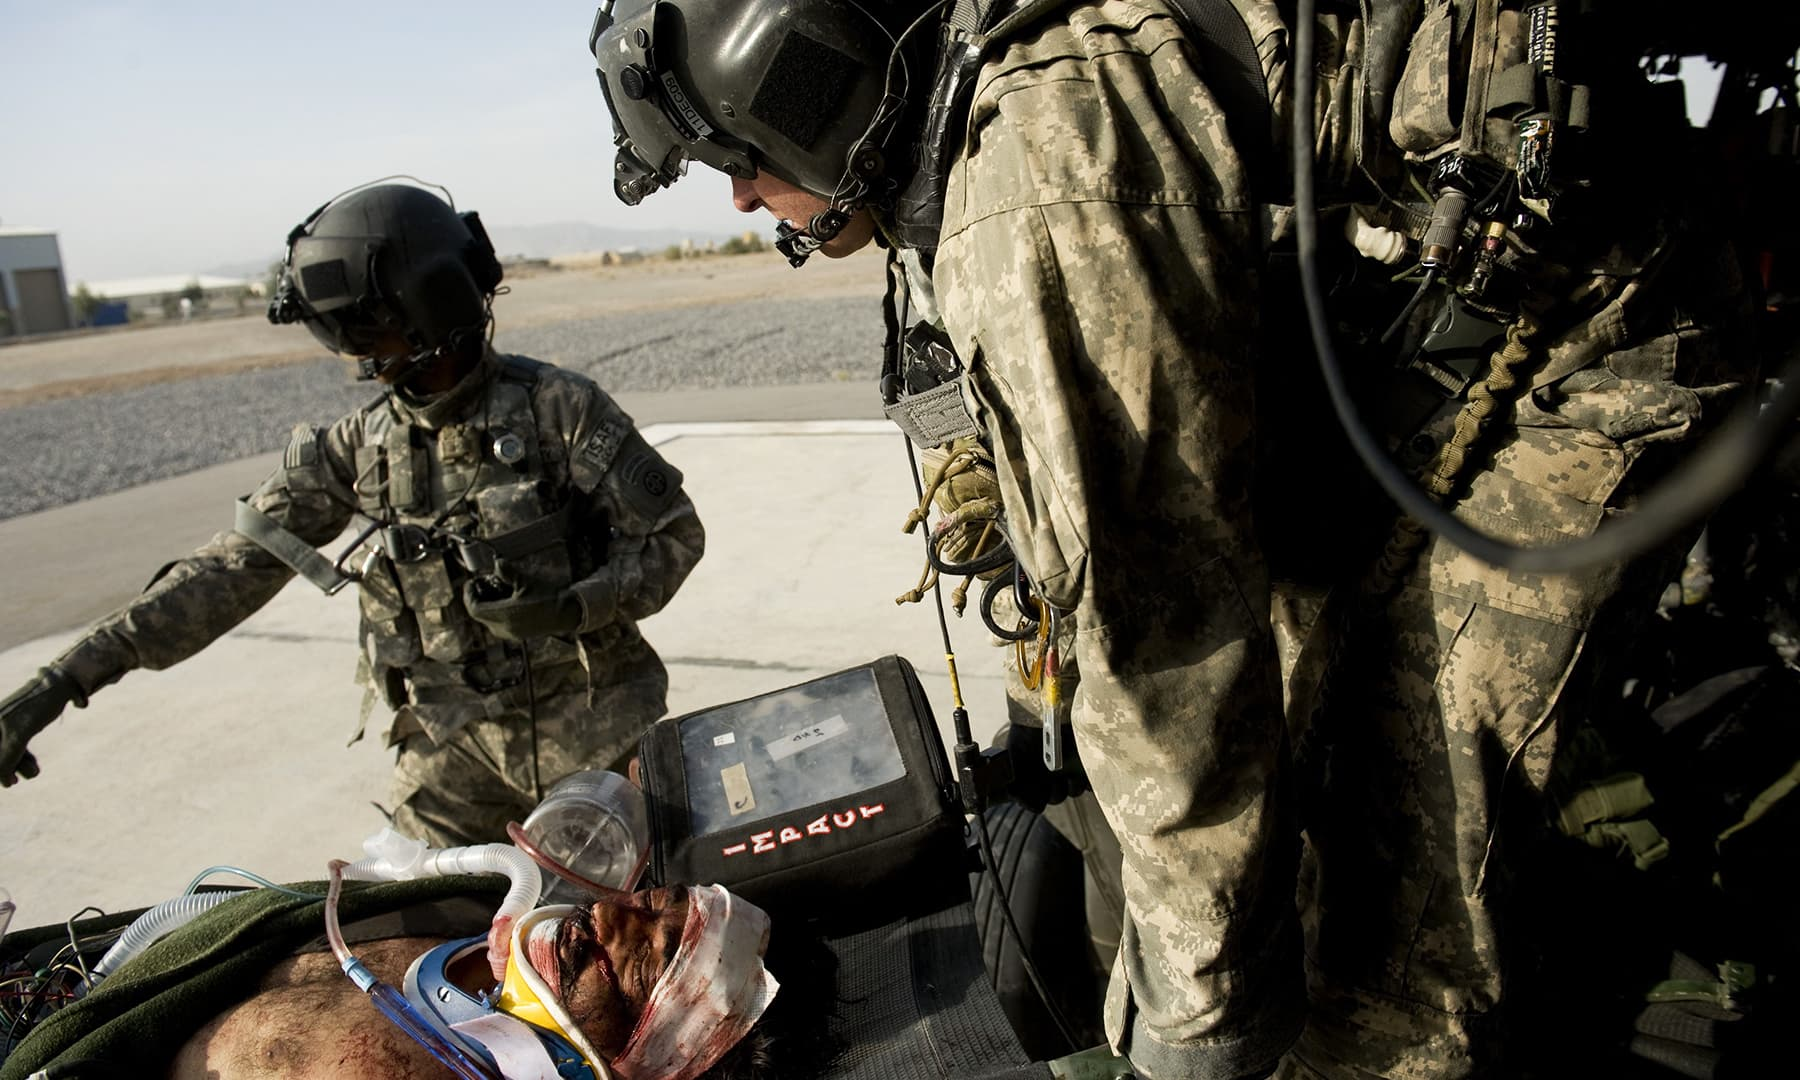 In this file photo taken on November 4, 2009, US medics of Medevac unit of 3rd battalion 82nd Combat Aviation Brigade carry an injured Afghan soldier off the helicopter to be taken to the hospital in Kandahar. — AFP